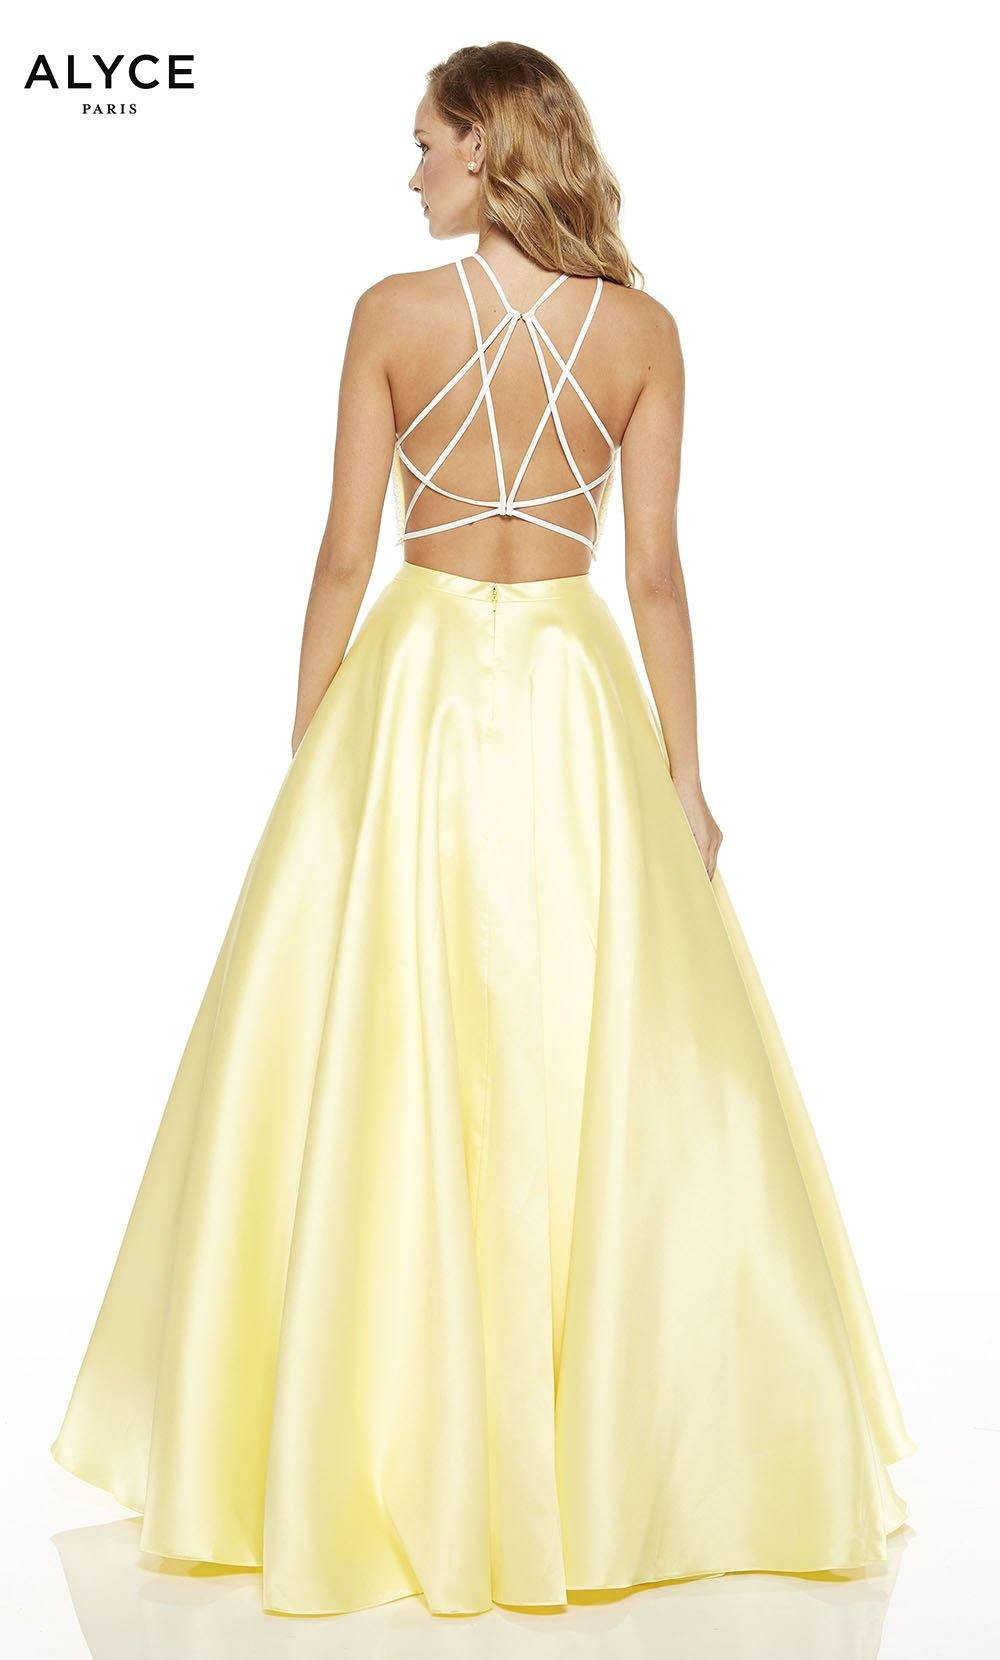 Diamond White-Lemon Drop two piece prom dress with a strappy back